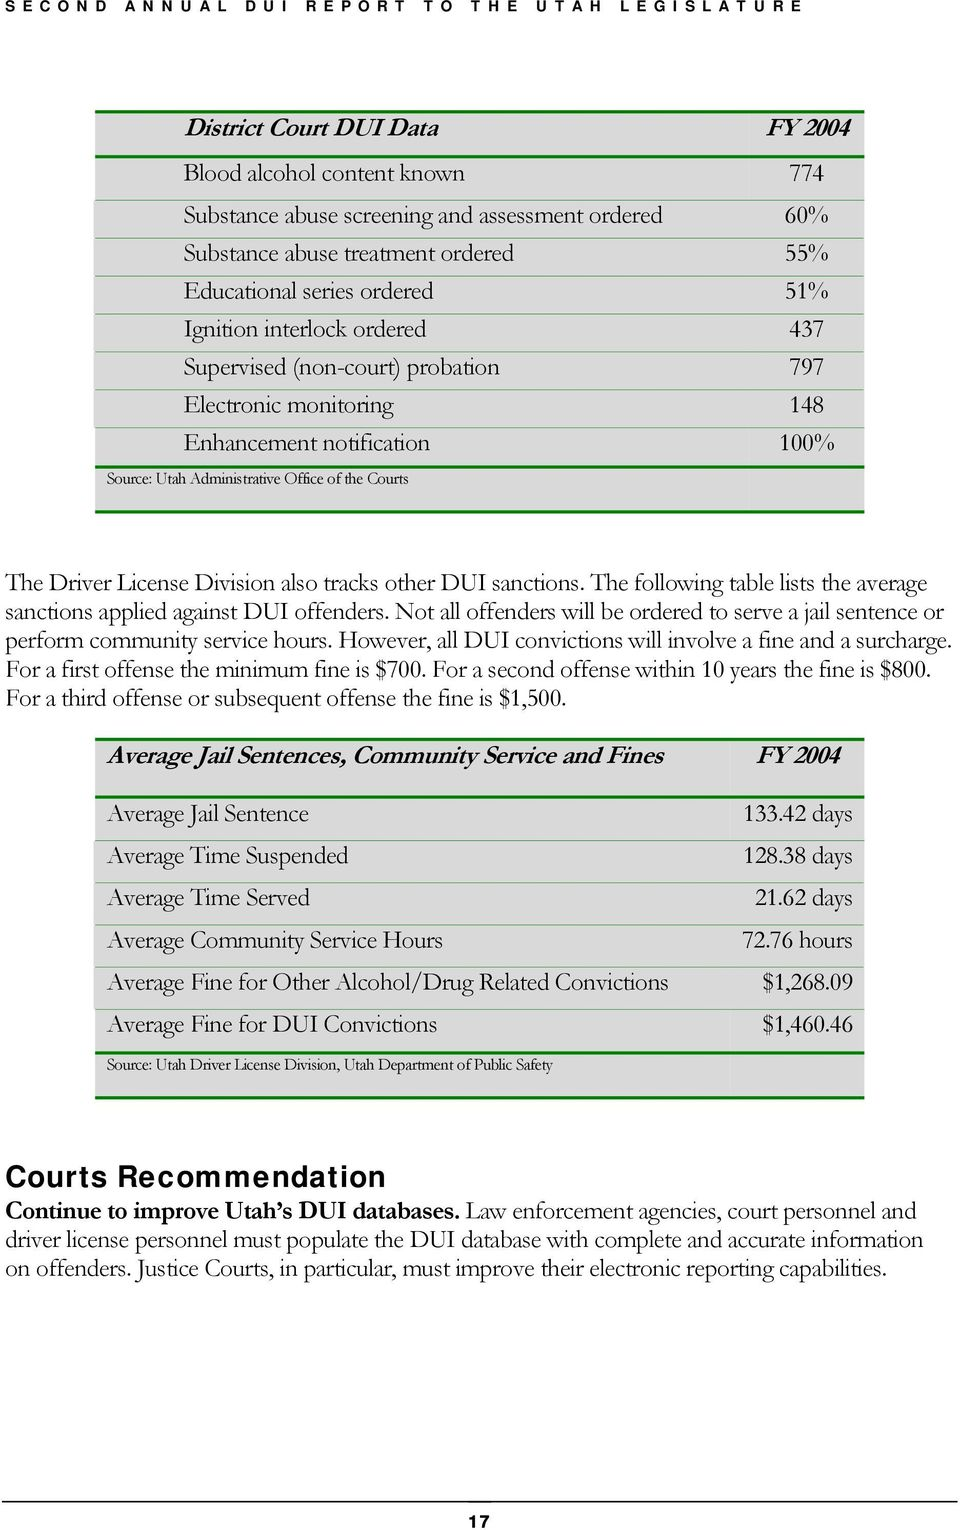 tracks other DUI sanctions. The following table lists the average sanctions applied against DUI offenders.